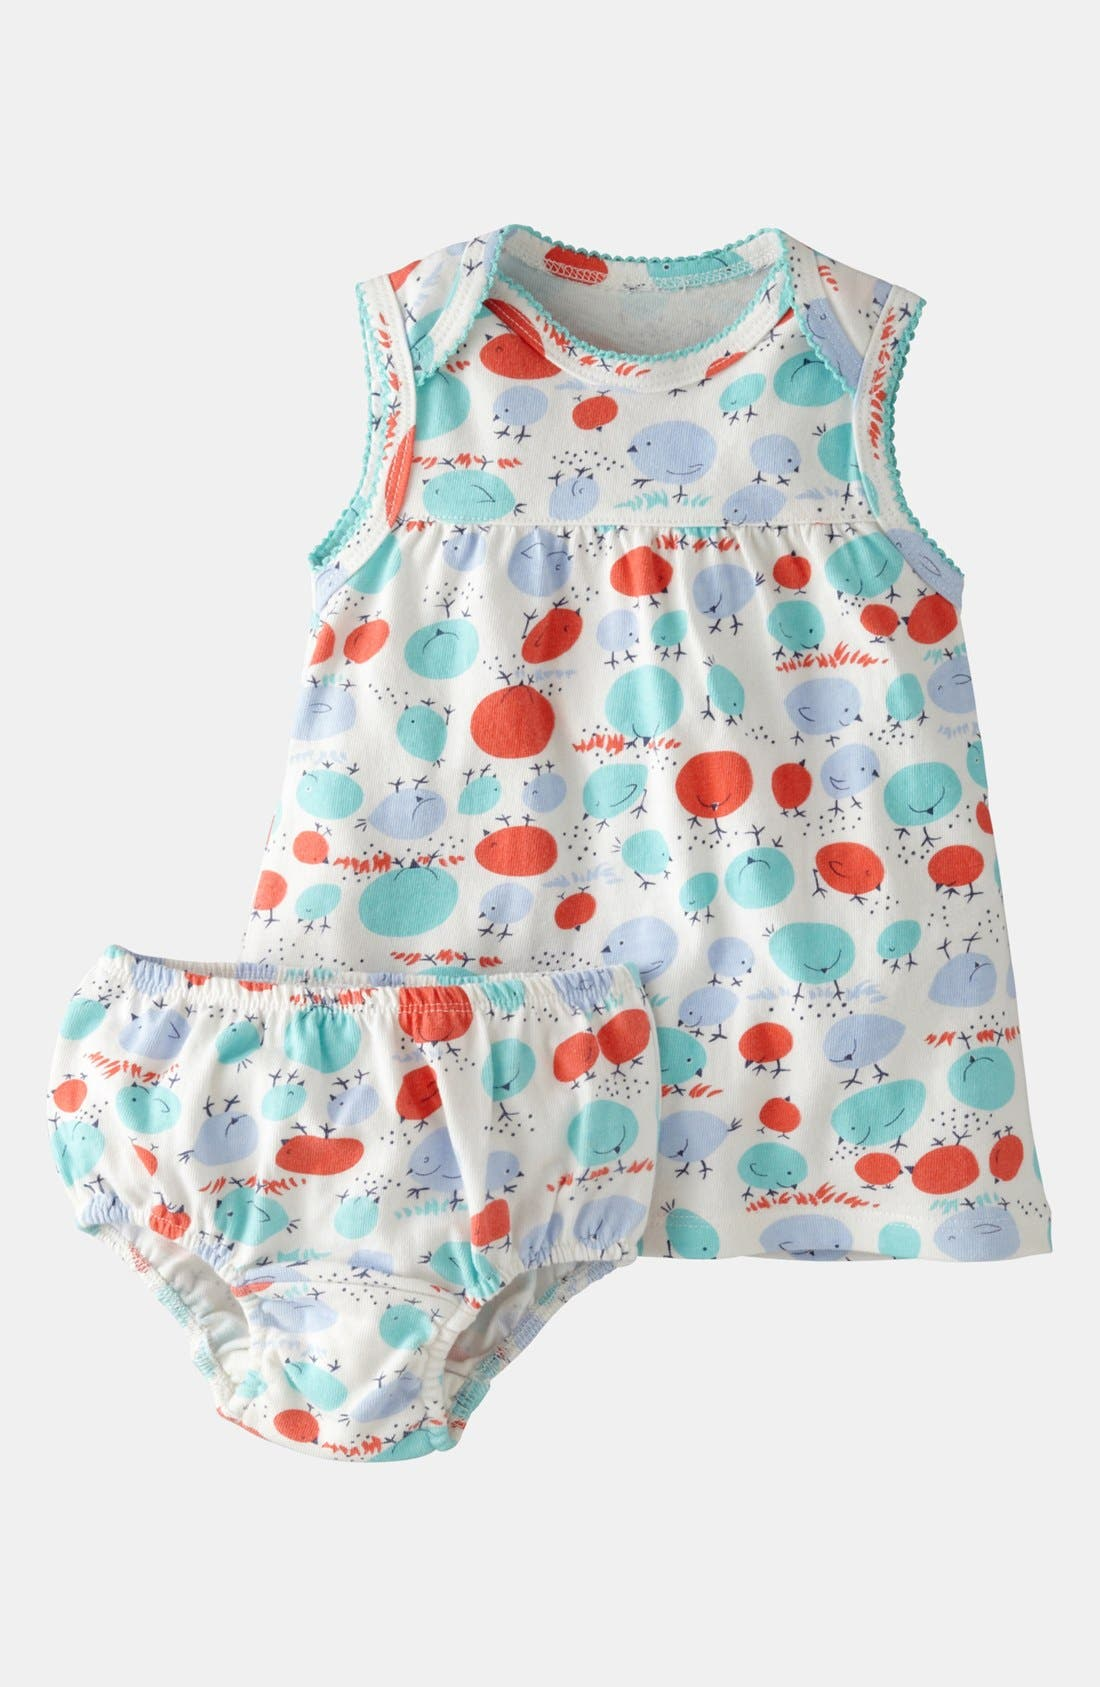 Main Image - Mini Boden Print Jersey Dress & Bloomers (Baby)